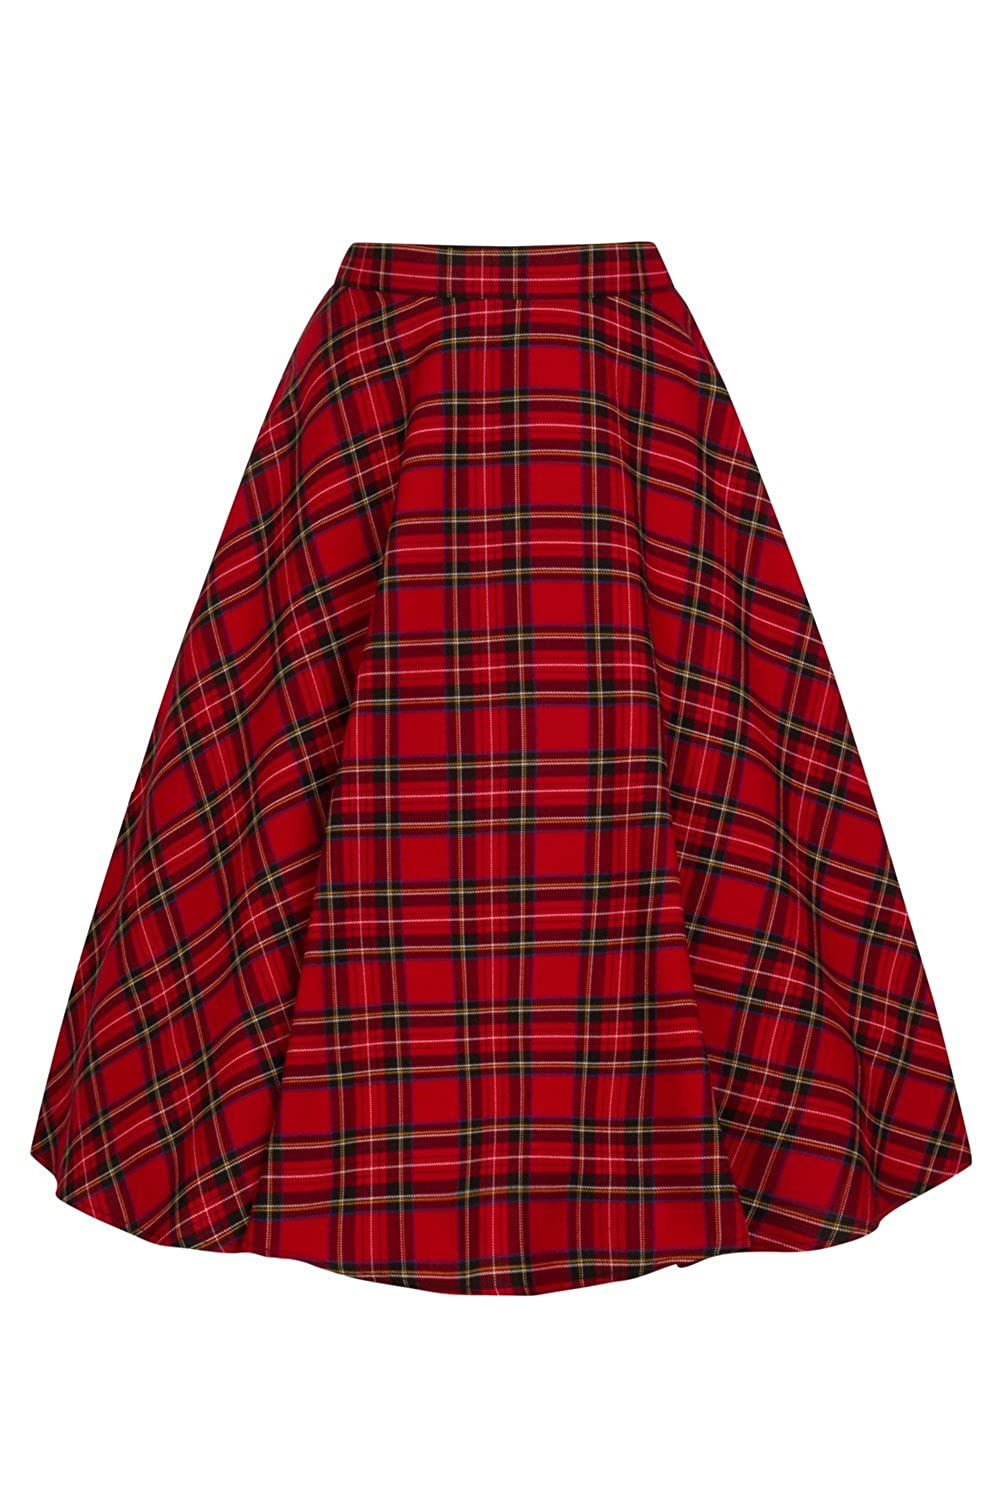 50s Skirt Styles | Poodle Skirts, Circle Skirts, Pencil Skirts Hell Bunny Irvine Red Tartan 50s Vintage Retro Flare Swing Skirt $46.99 AT vintagedancer.com